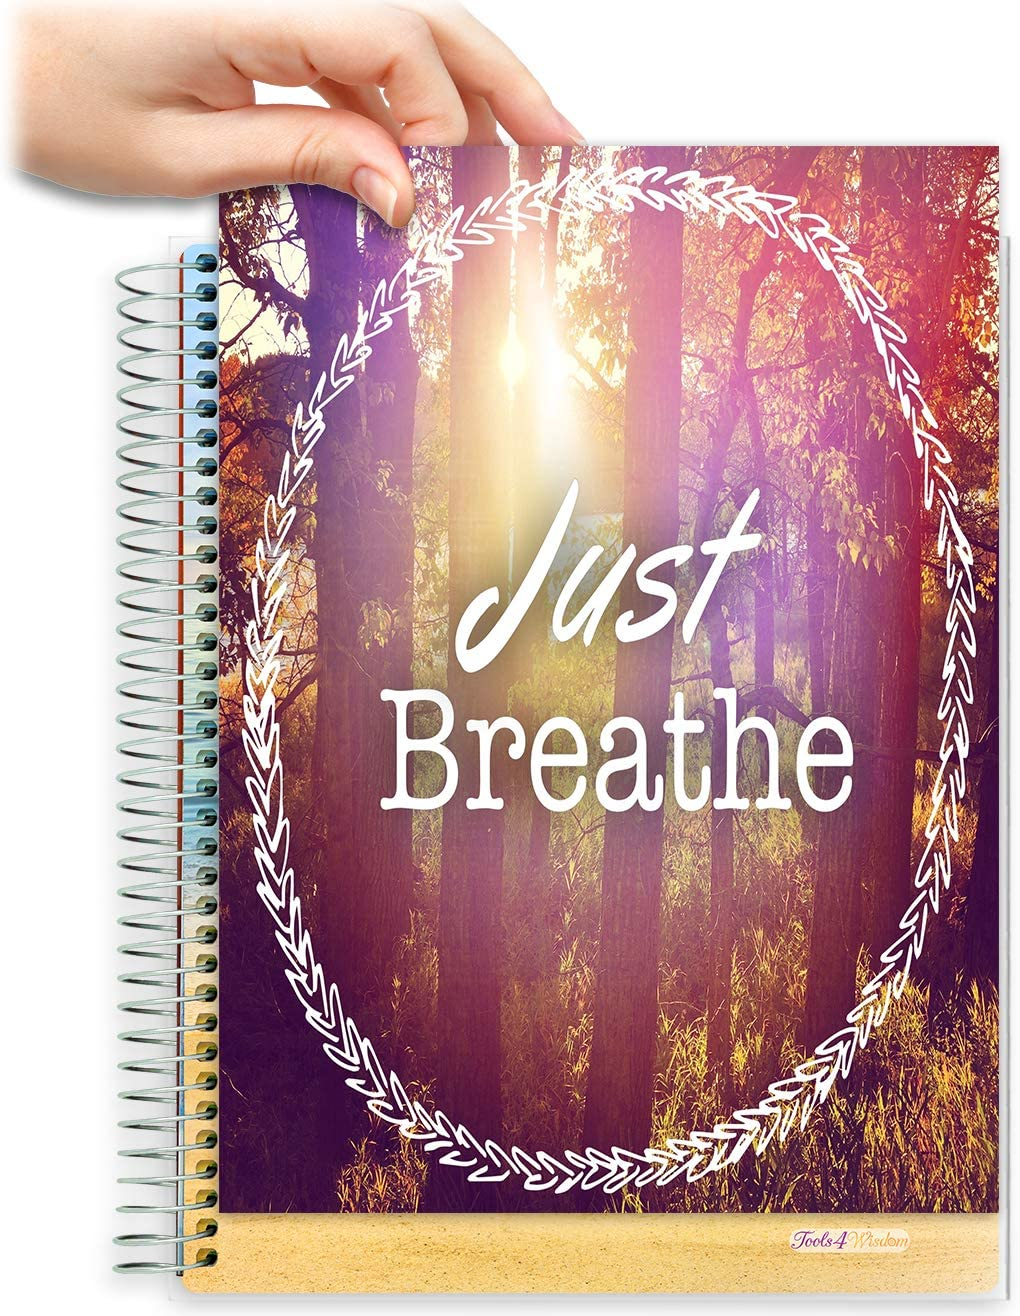 8.5x11 Customizable Softcover Planner • April 2021 to June 2022 Academic Year • Just Breathe